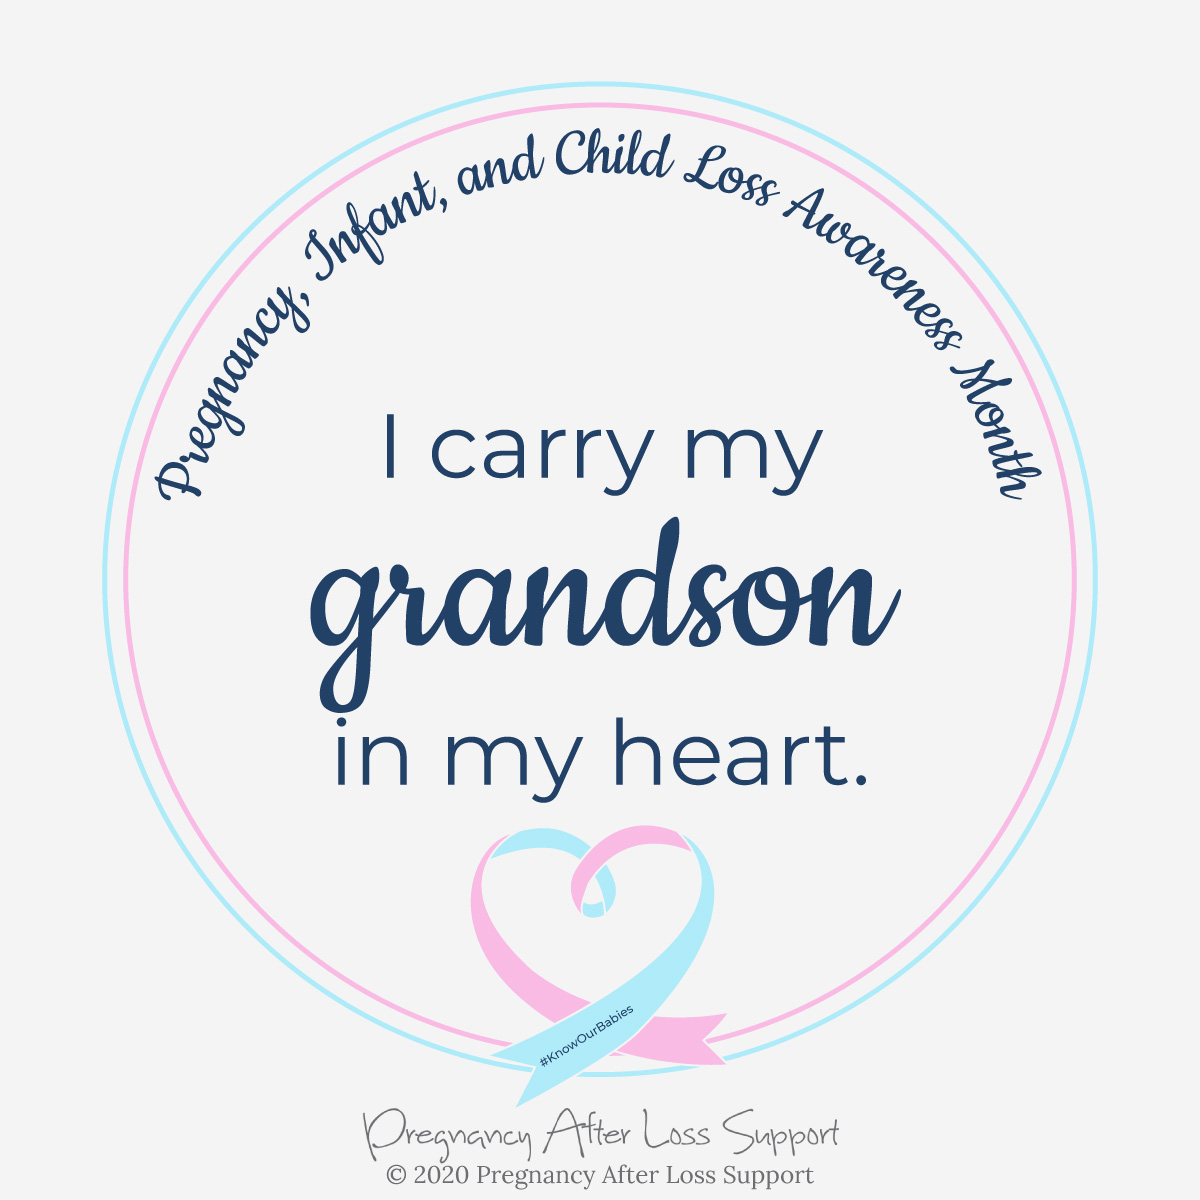 I carry my grandson in my heart - Pregnancy, Infant, and Child Loss Awareness Month